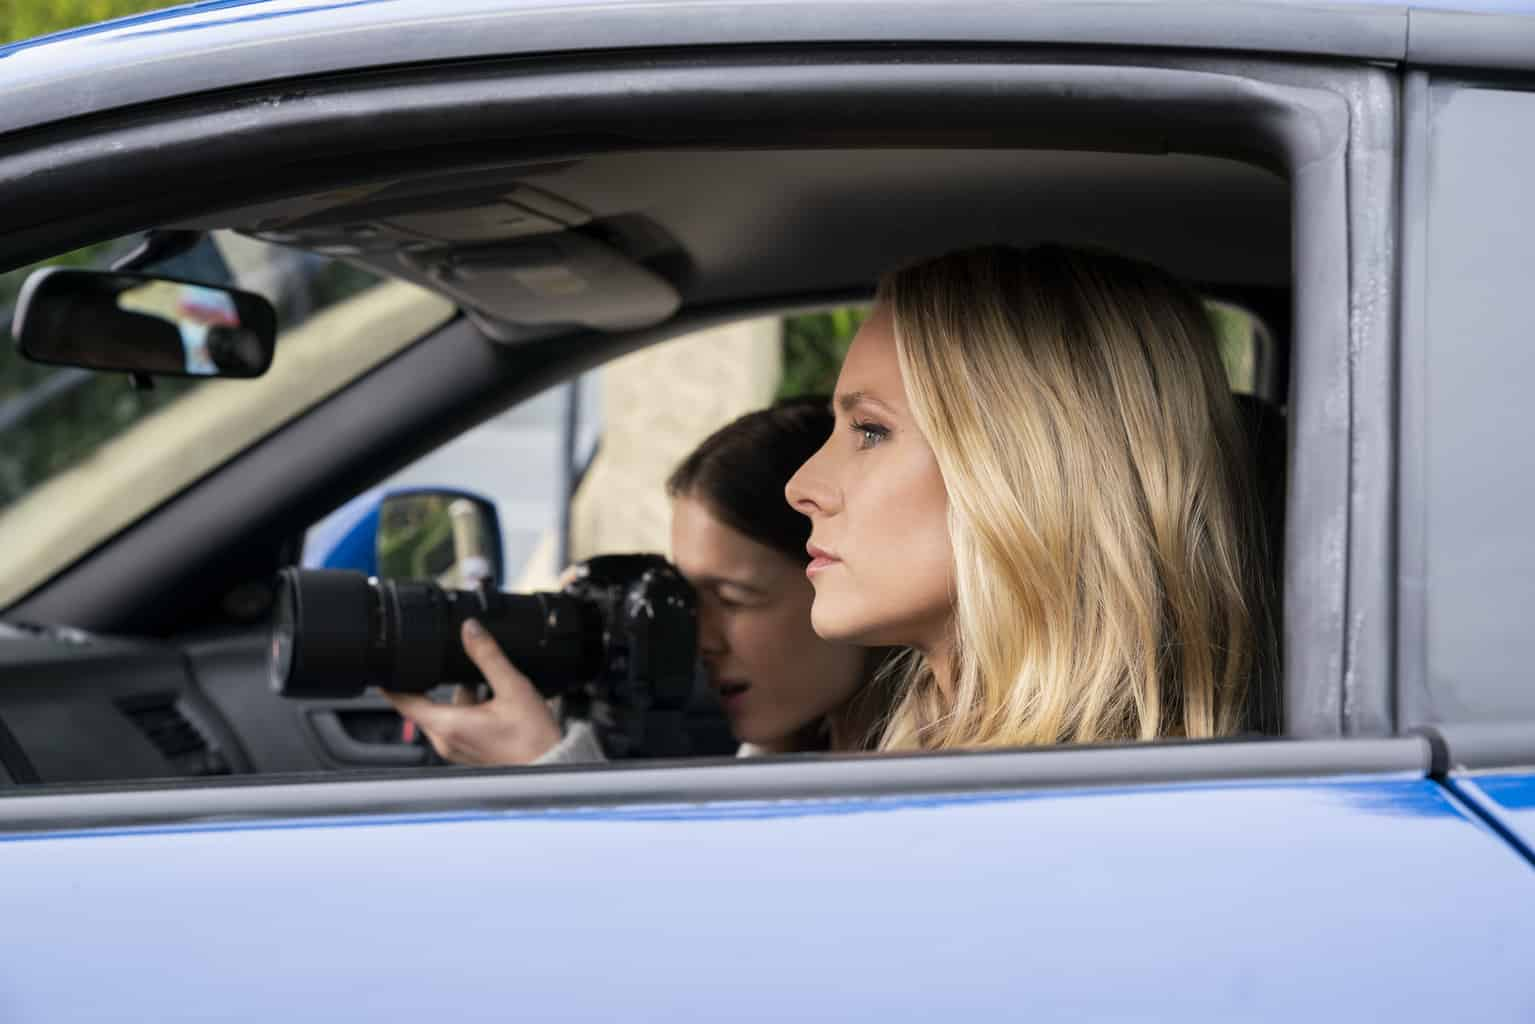 Veronica Mars Season 4 Review: Back and Better than Ever (For the Most Part)